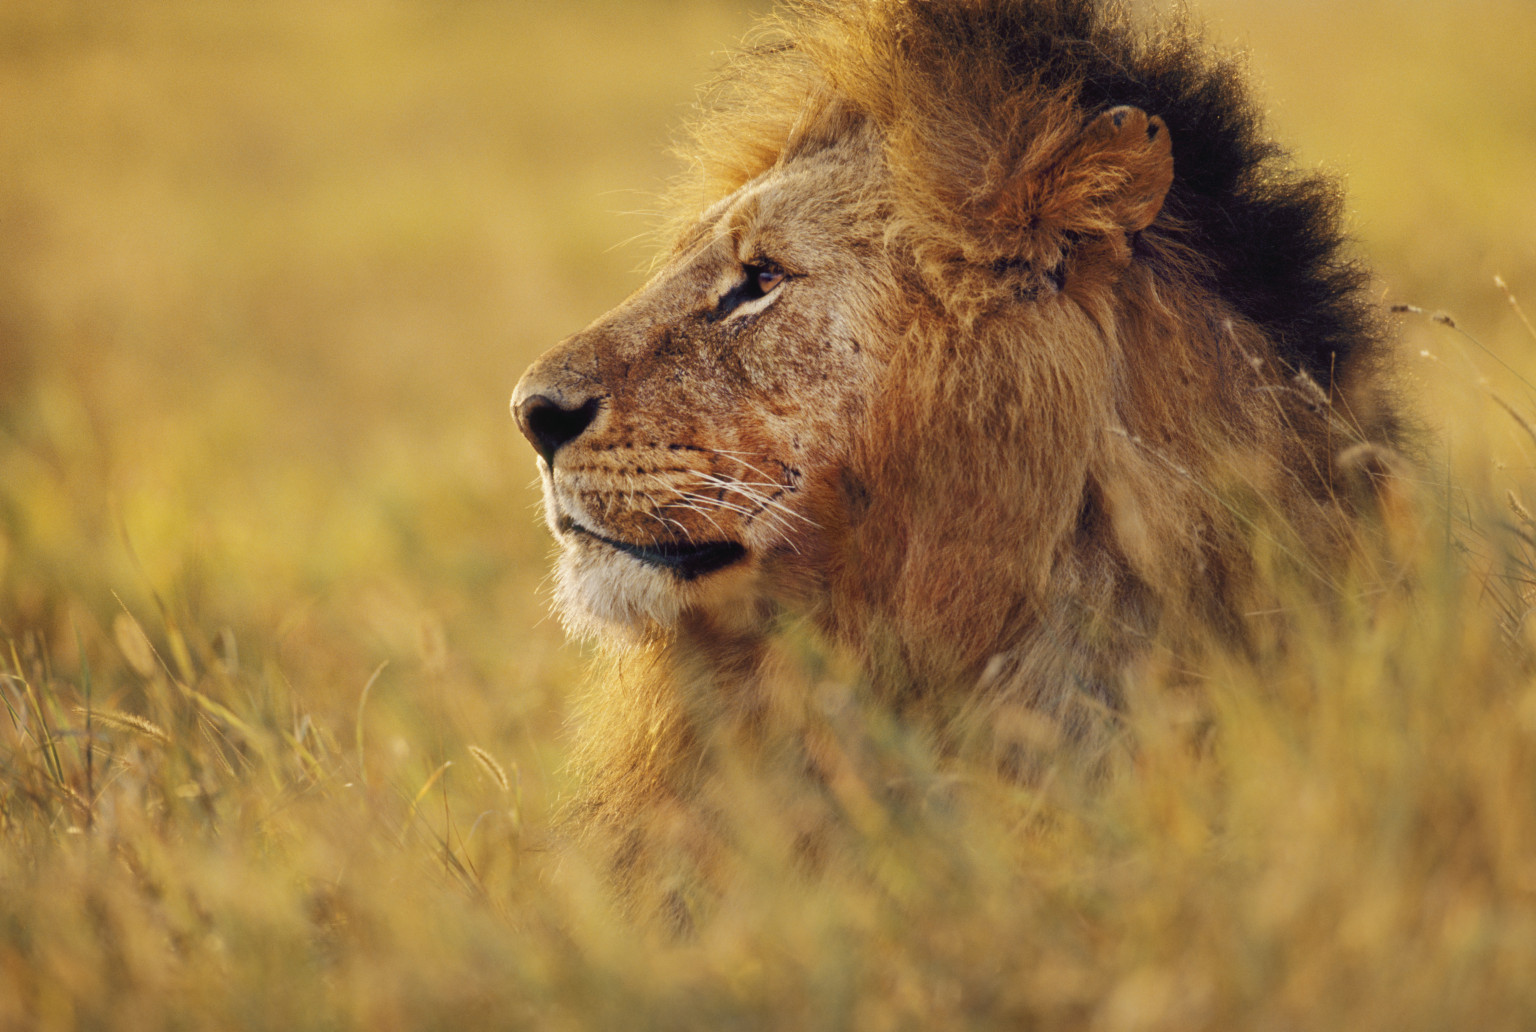 A Mozambican Lion Story: Working to Save Africa's Lions ...